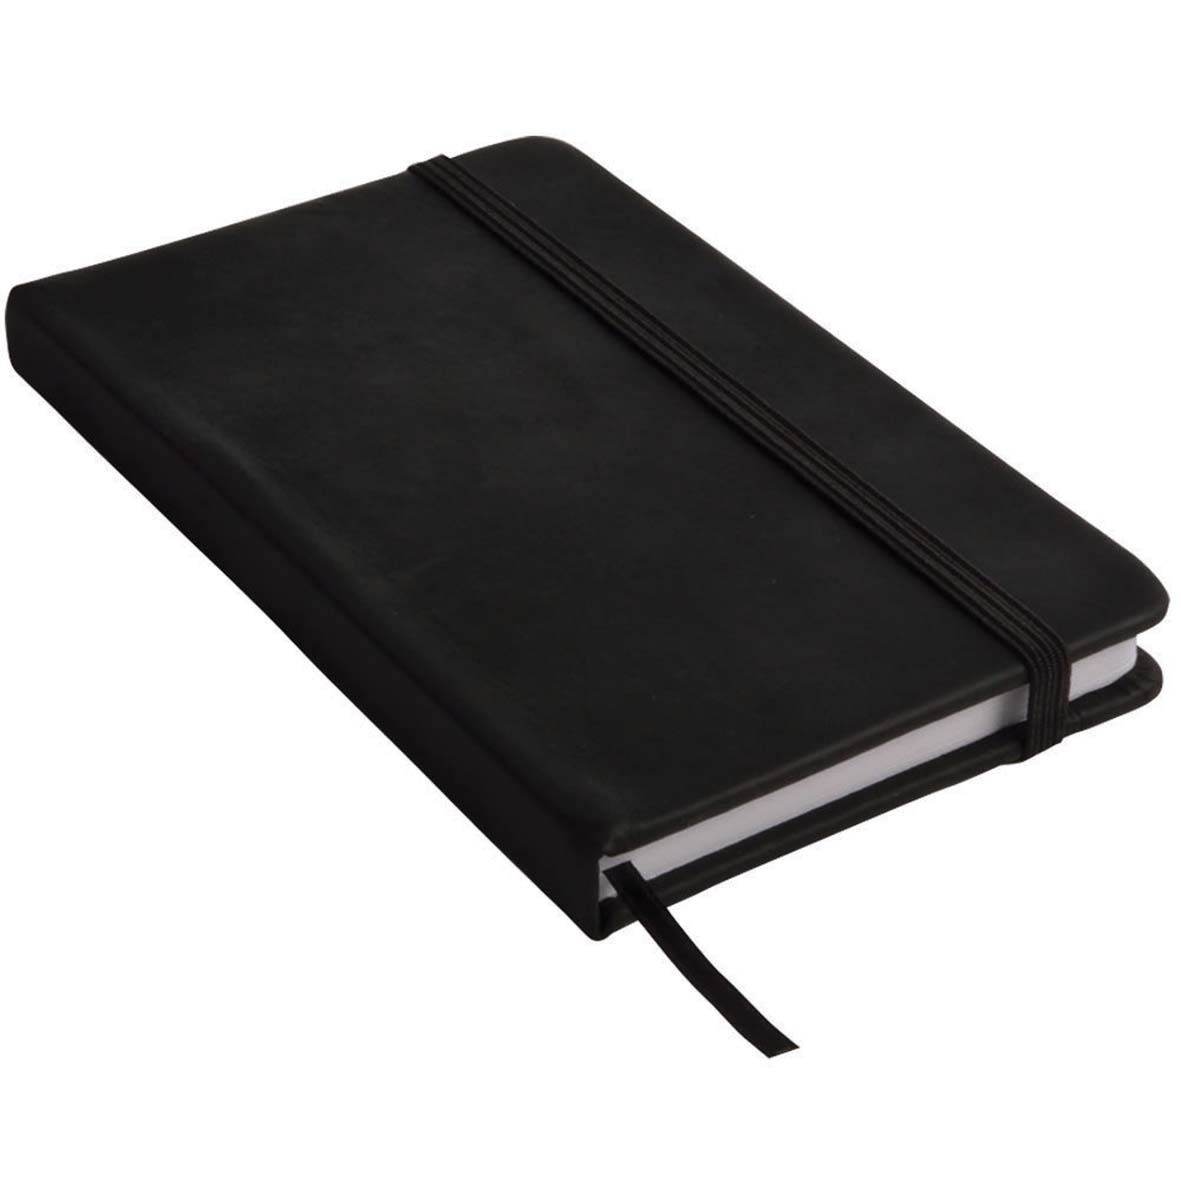 Note book with PU cover and elastic band for closing -  Black sip-1441402